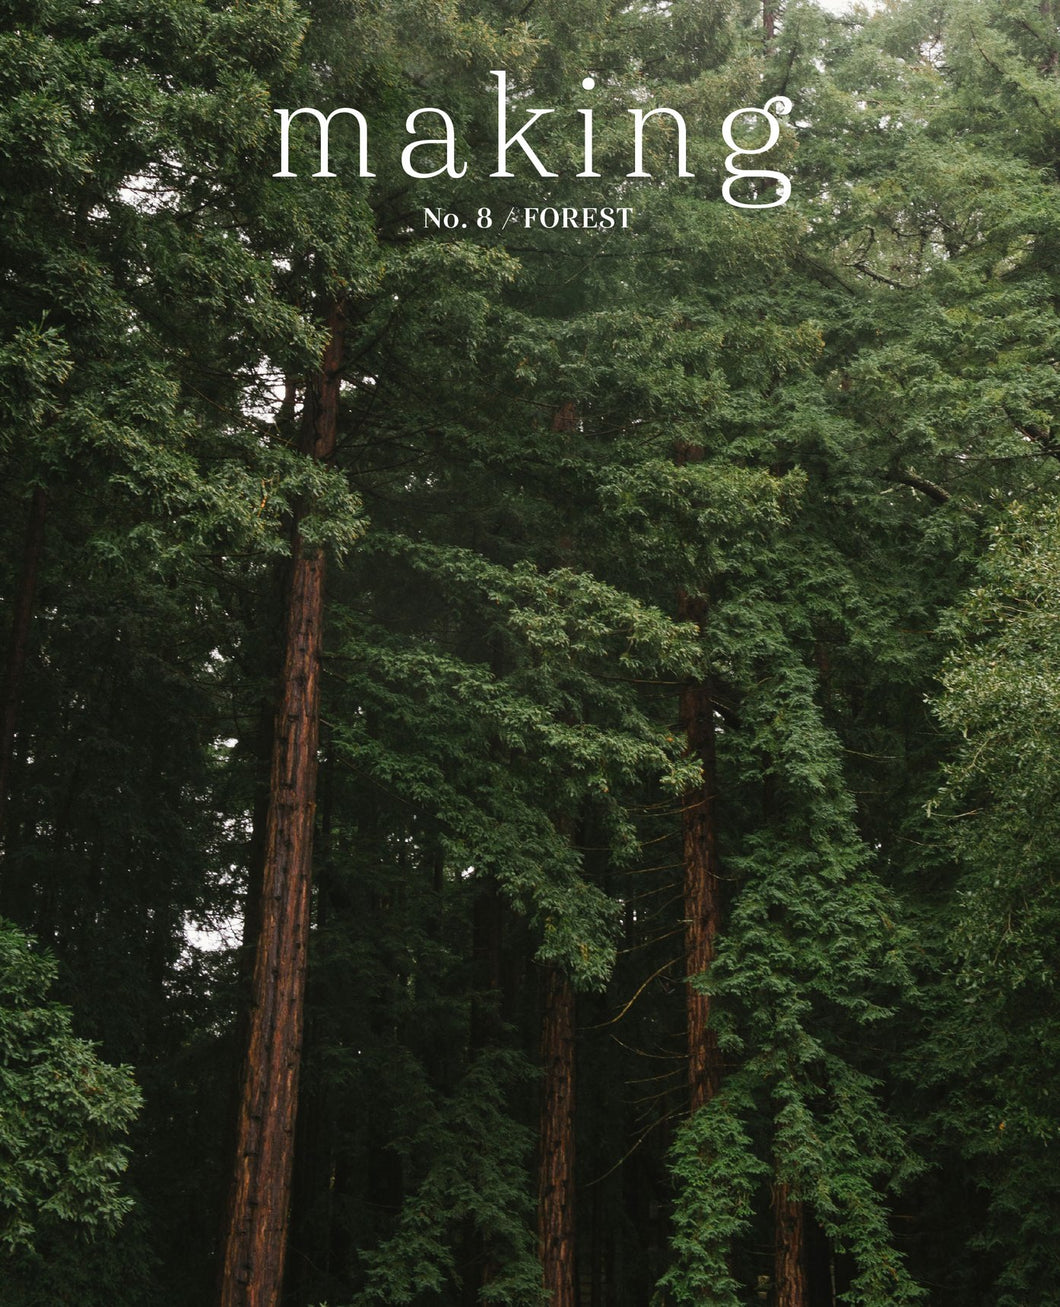 Making Magazine No. 8 Forest